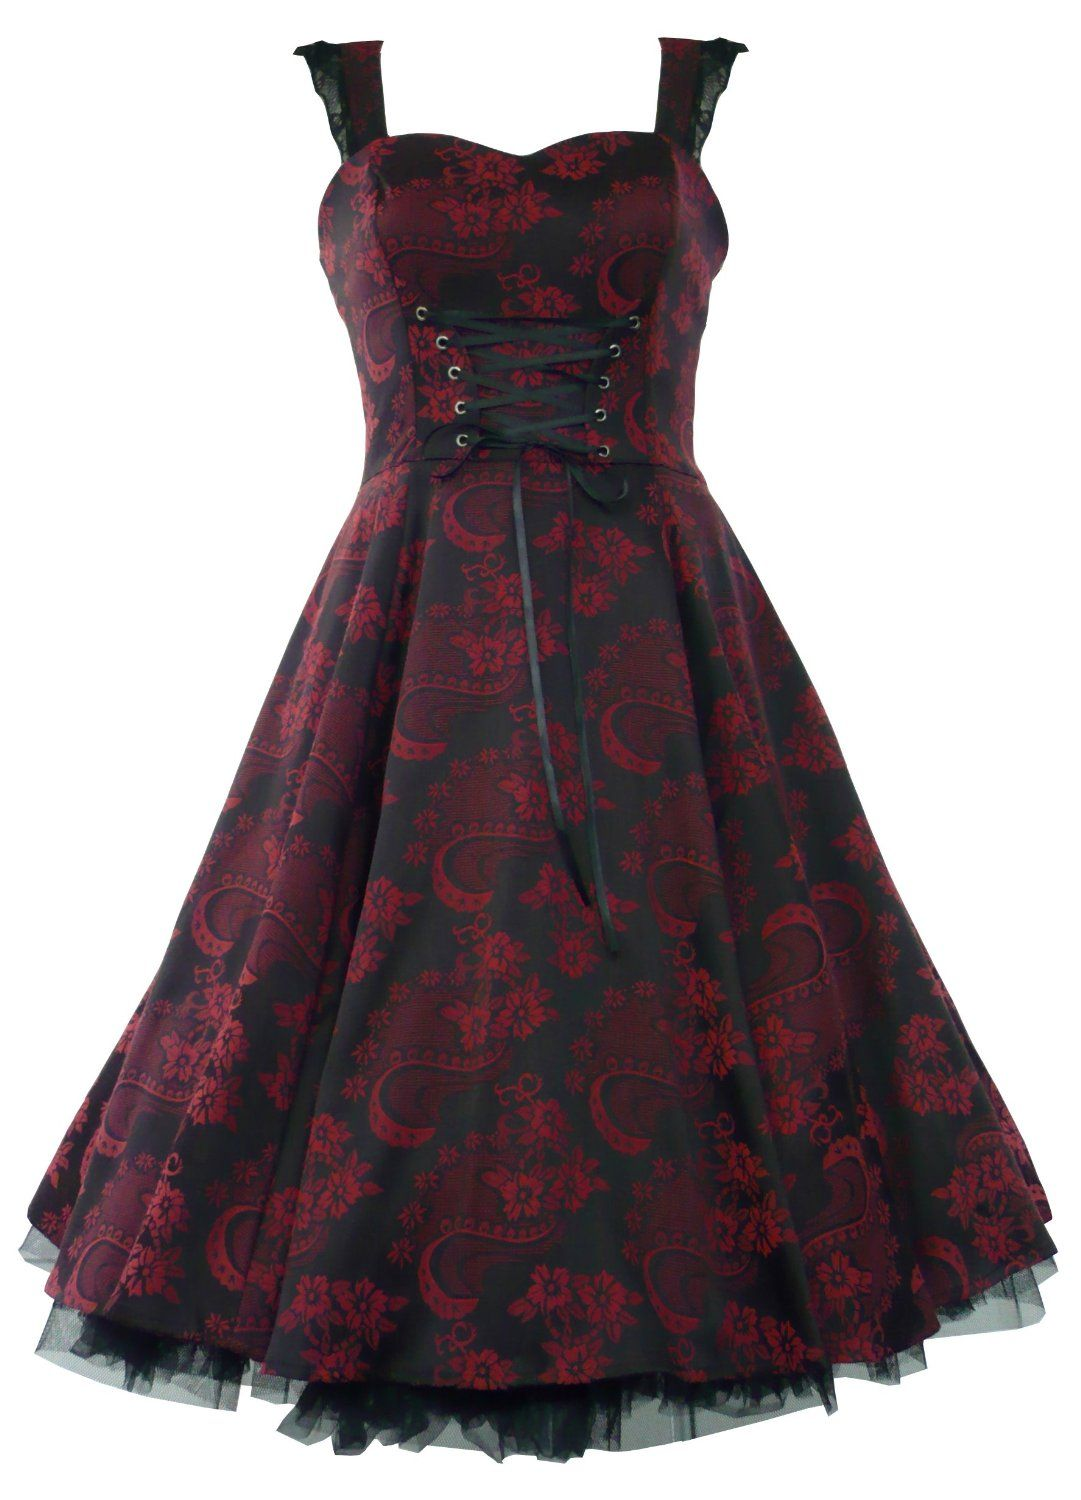 50's Brocade Floral Party Prom Dress Black Red - Size UK 8-18